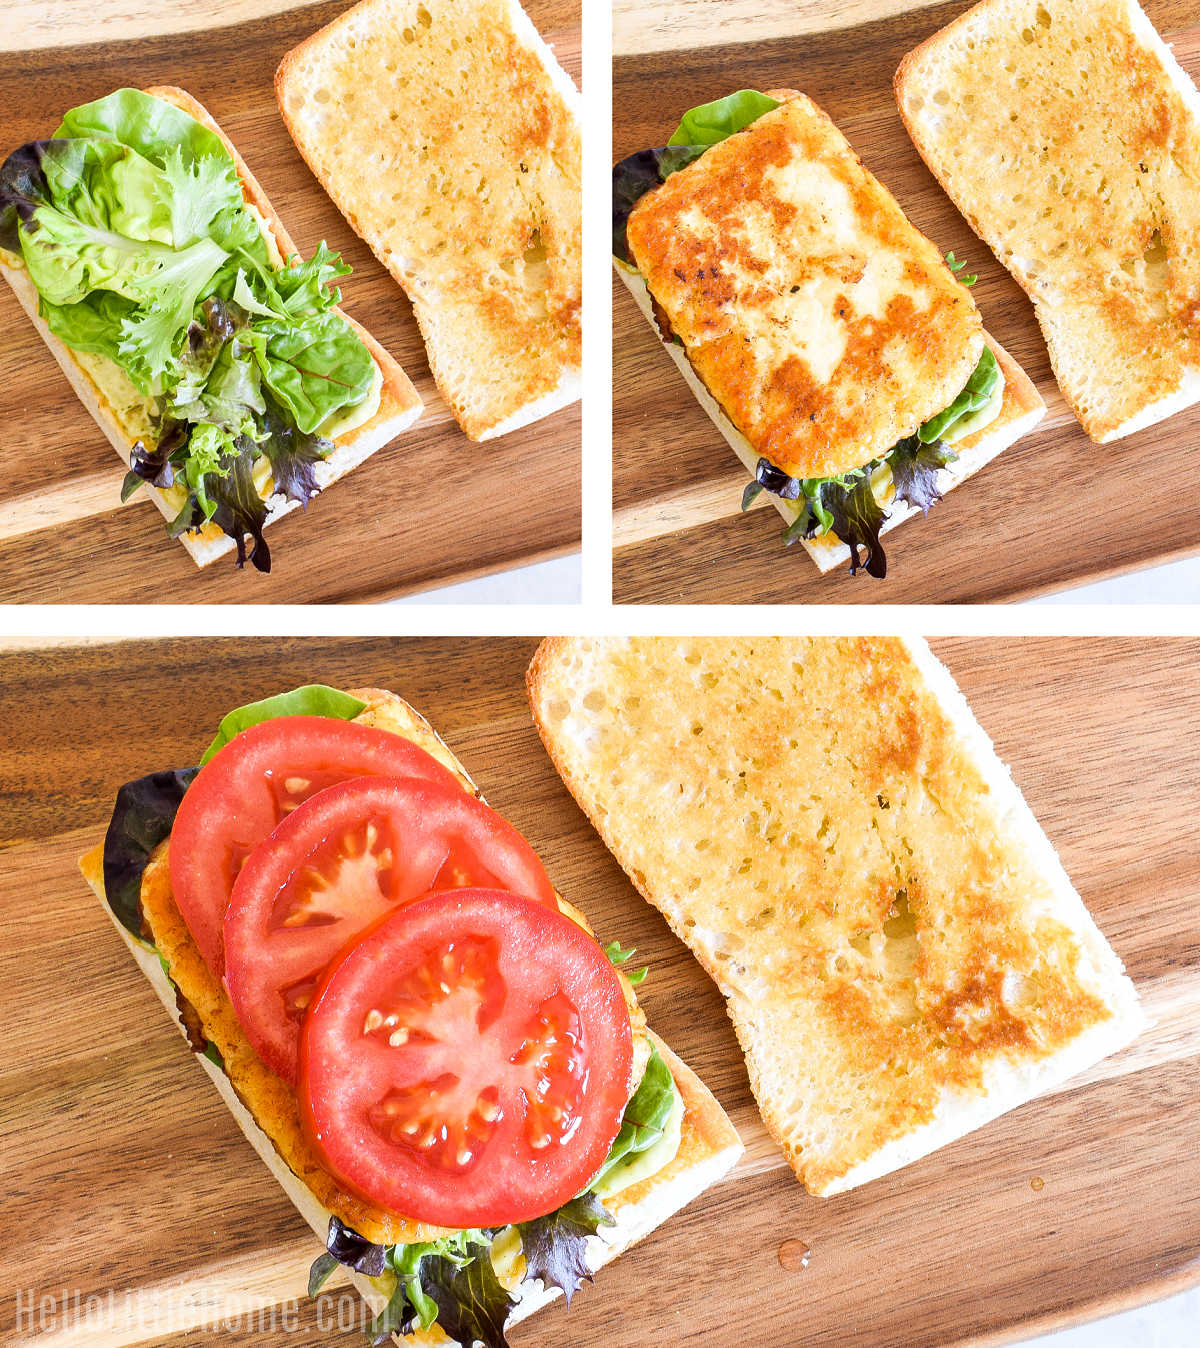 A photo collage showing how the sandwich is assembled.